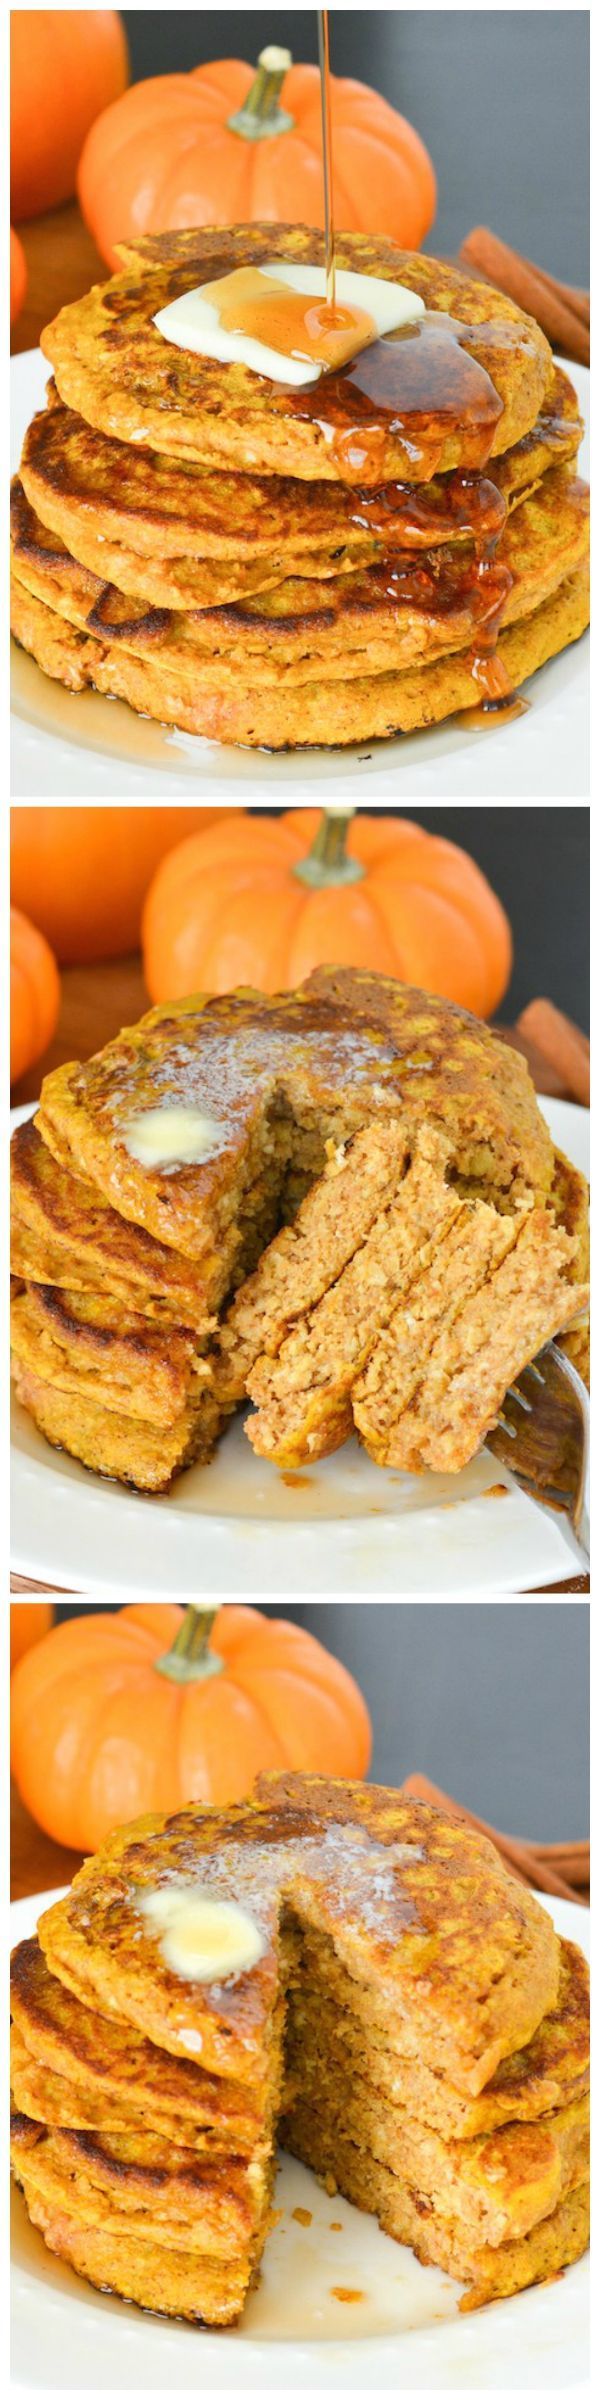 Pumpkin Oatmeal Pancakes - These hearty pancakes are packed with pumpkin, oatmeal and whole wheat. They'll keep you full throughout these chilly fall mornings!